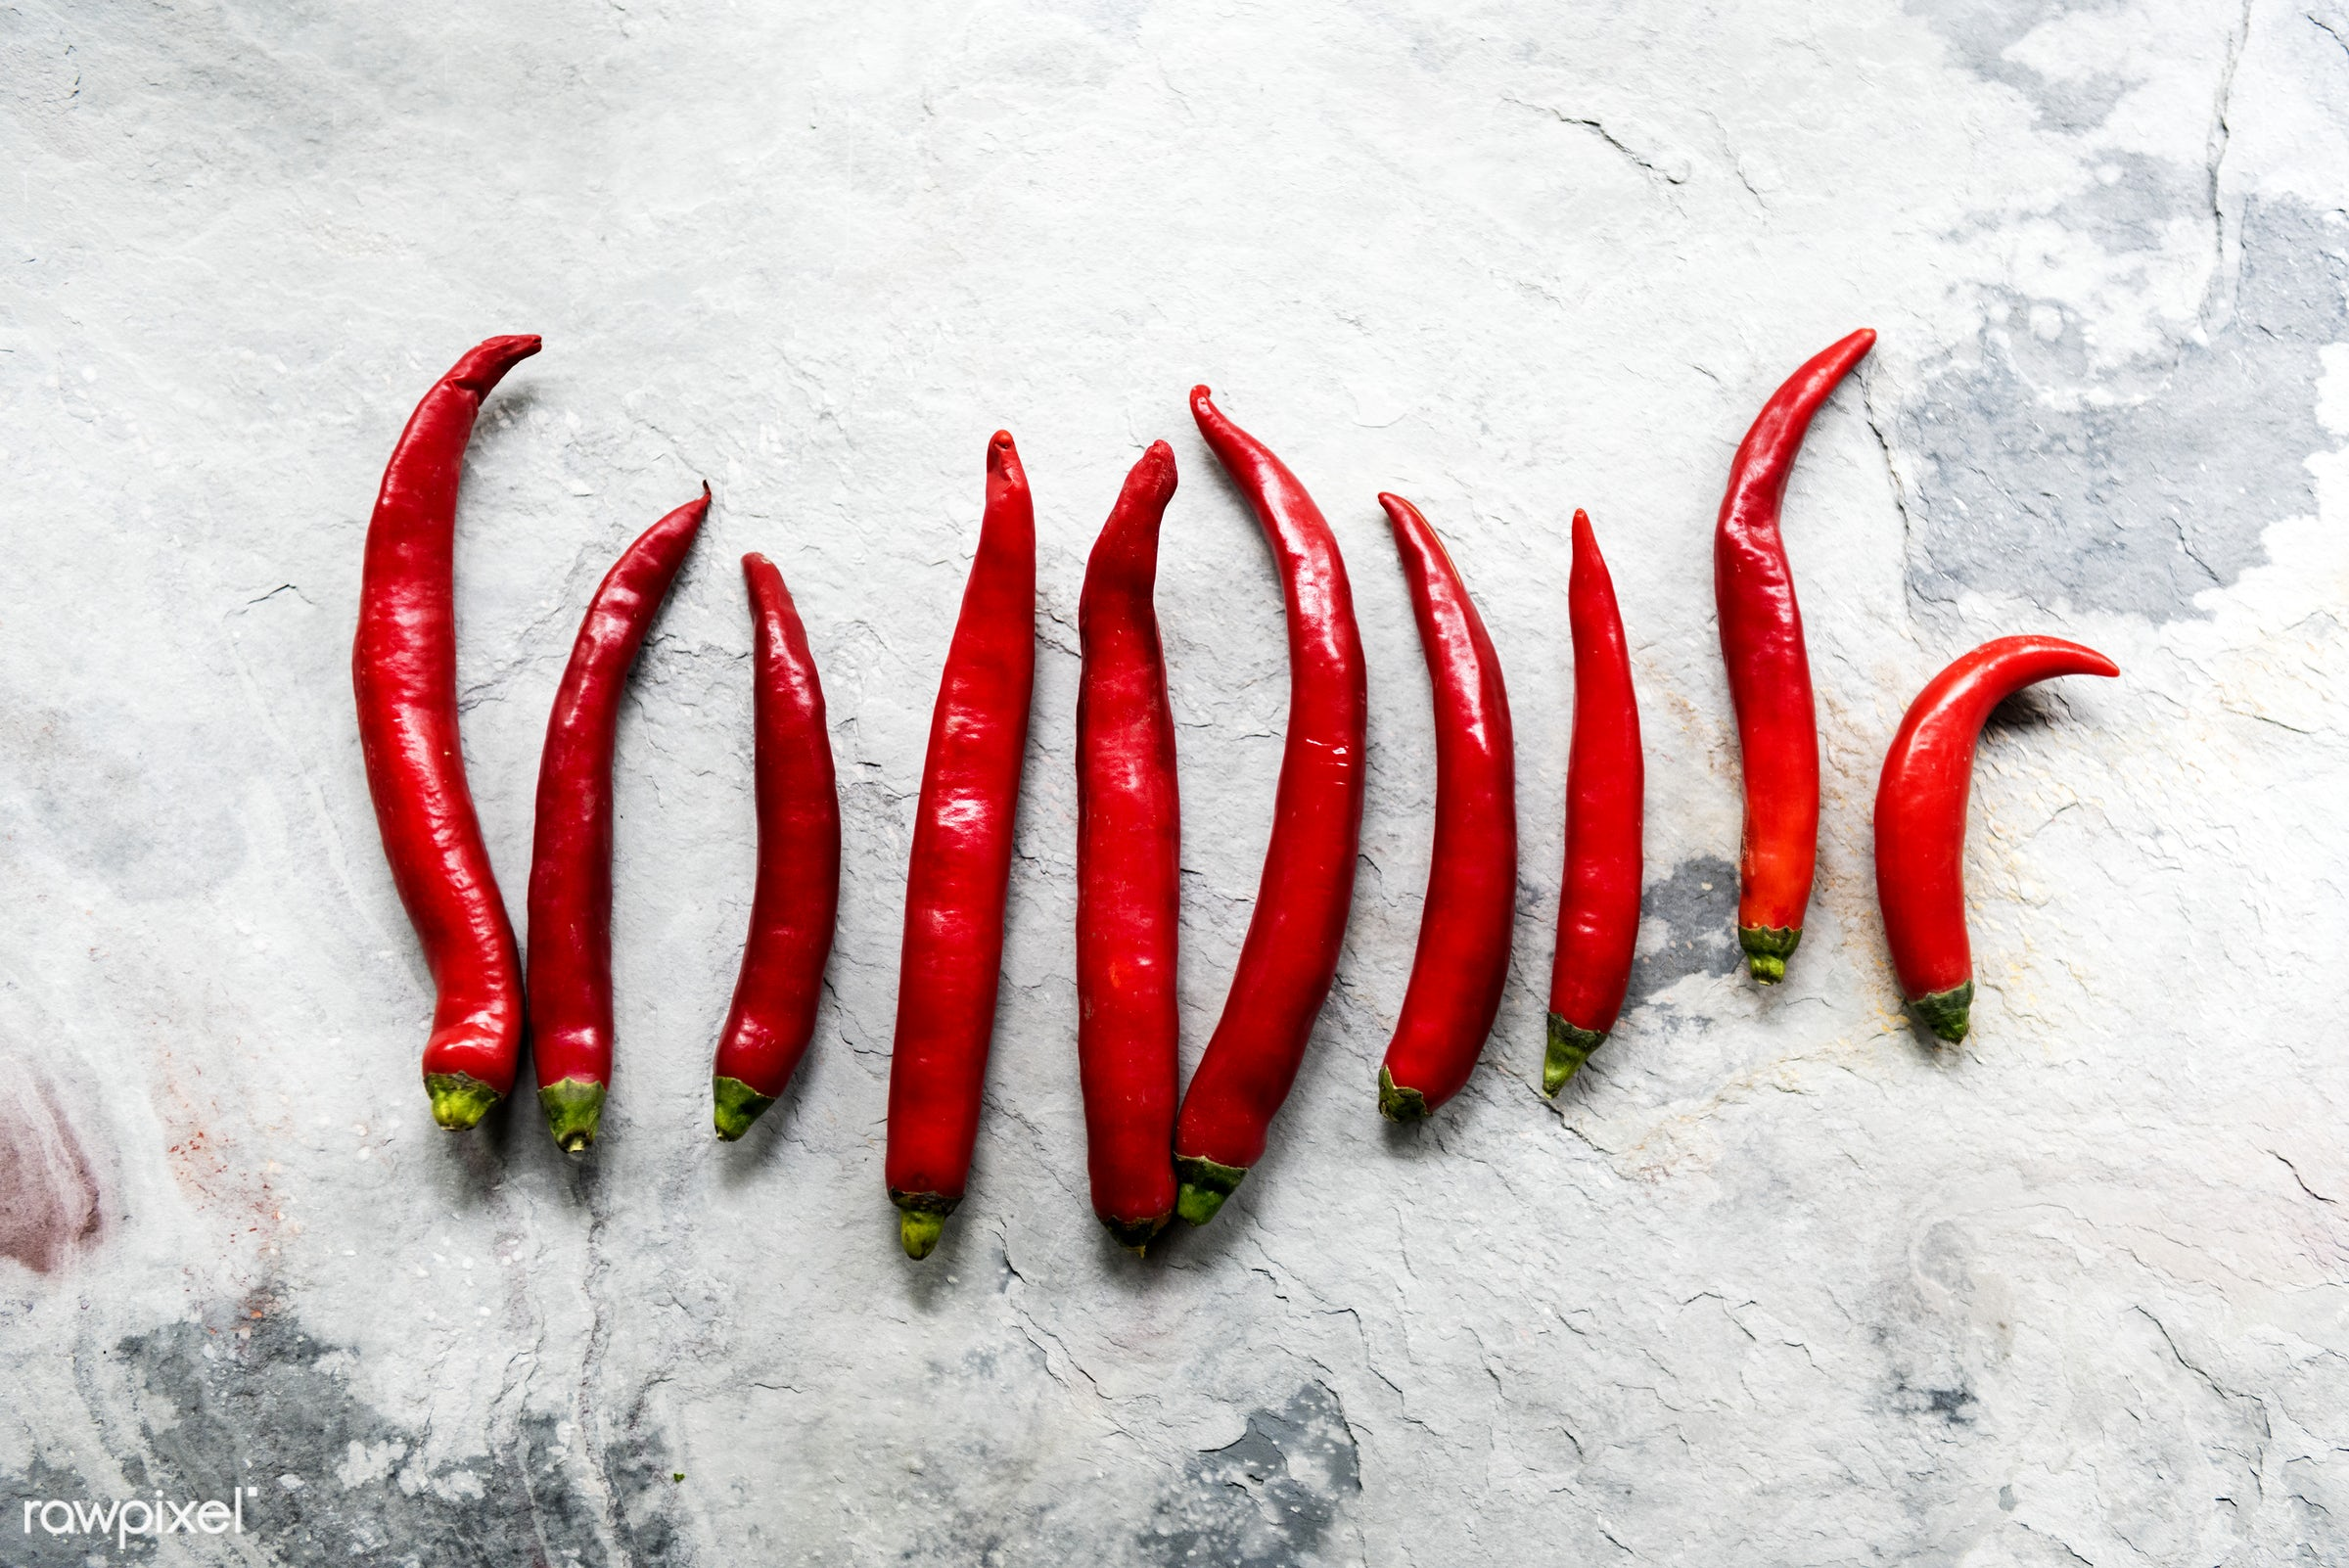 raw, nobody, peppers, grunge background, set, cayenne pepper, ingredients, farm, nature, fresh, aerial view, products,...